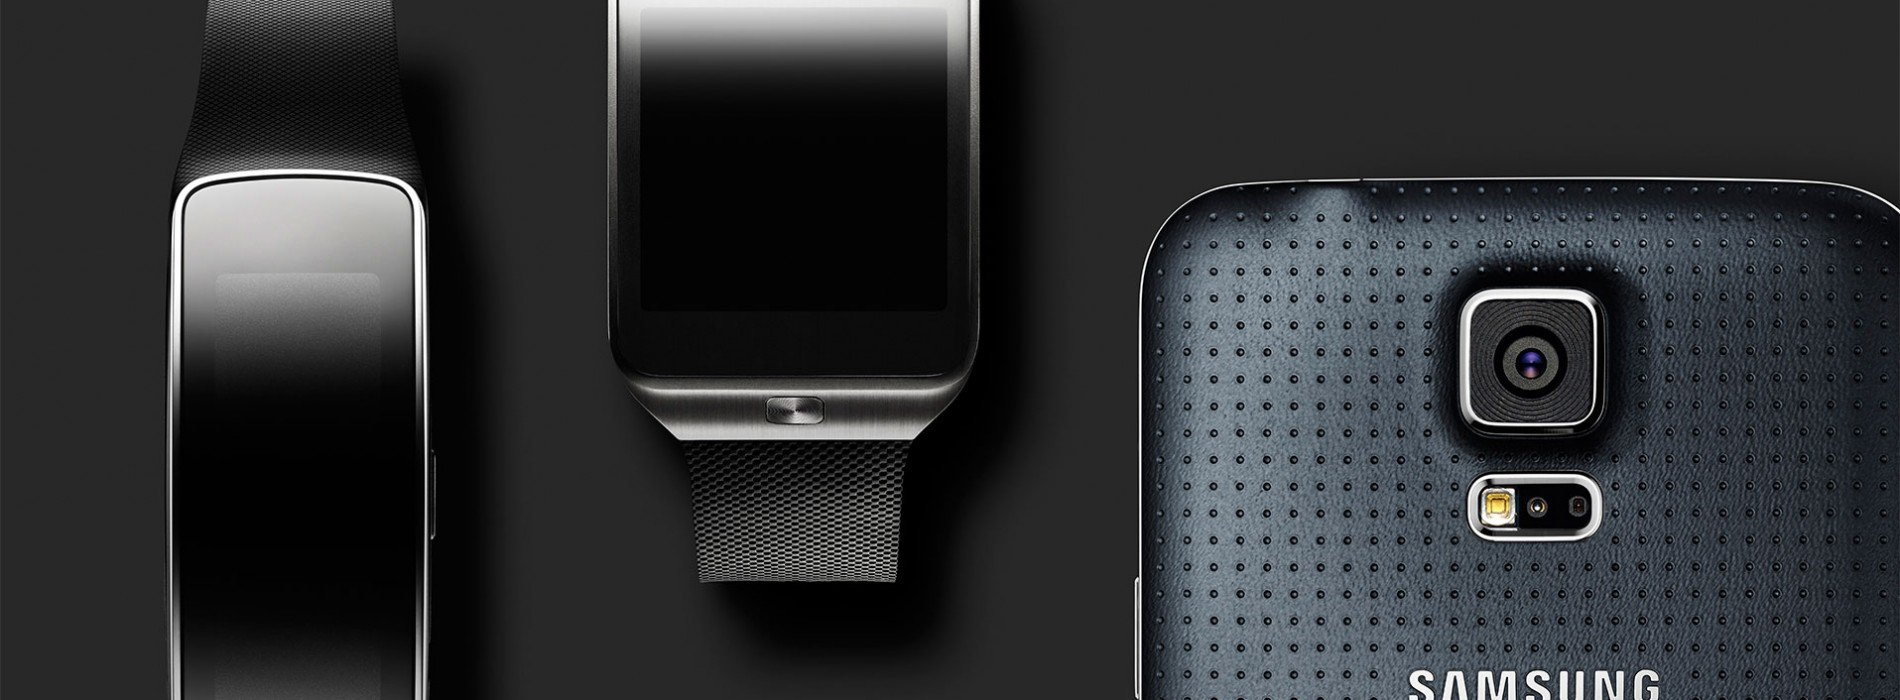 Samsung to offer global preview of Galaxy S5, Gear 2, and Gear Fit prior to launch